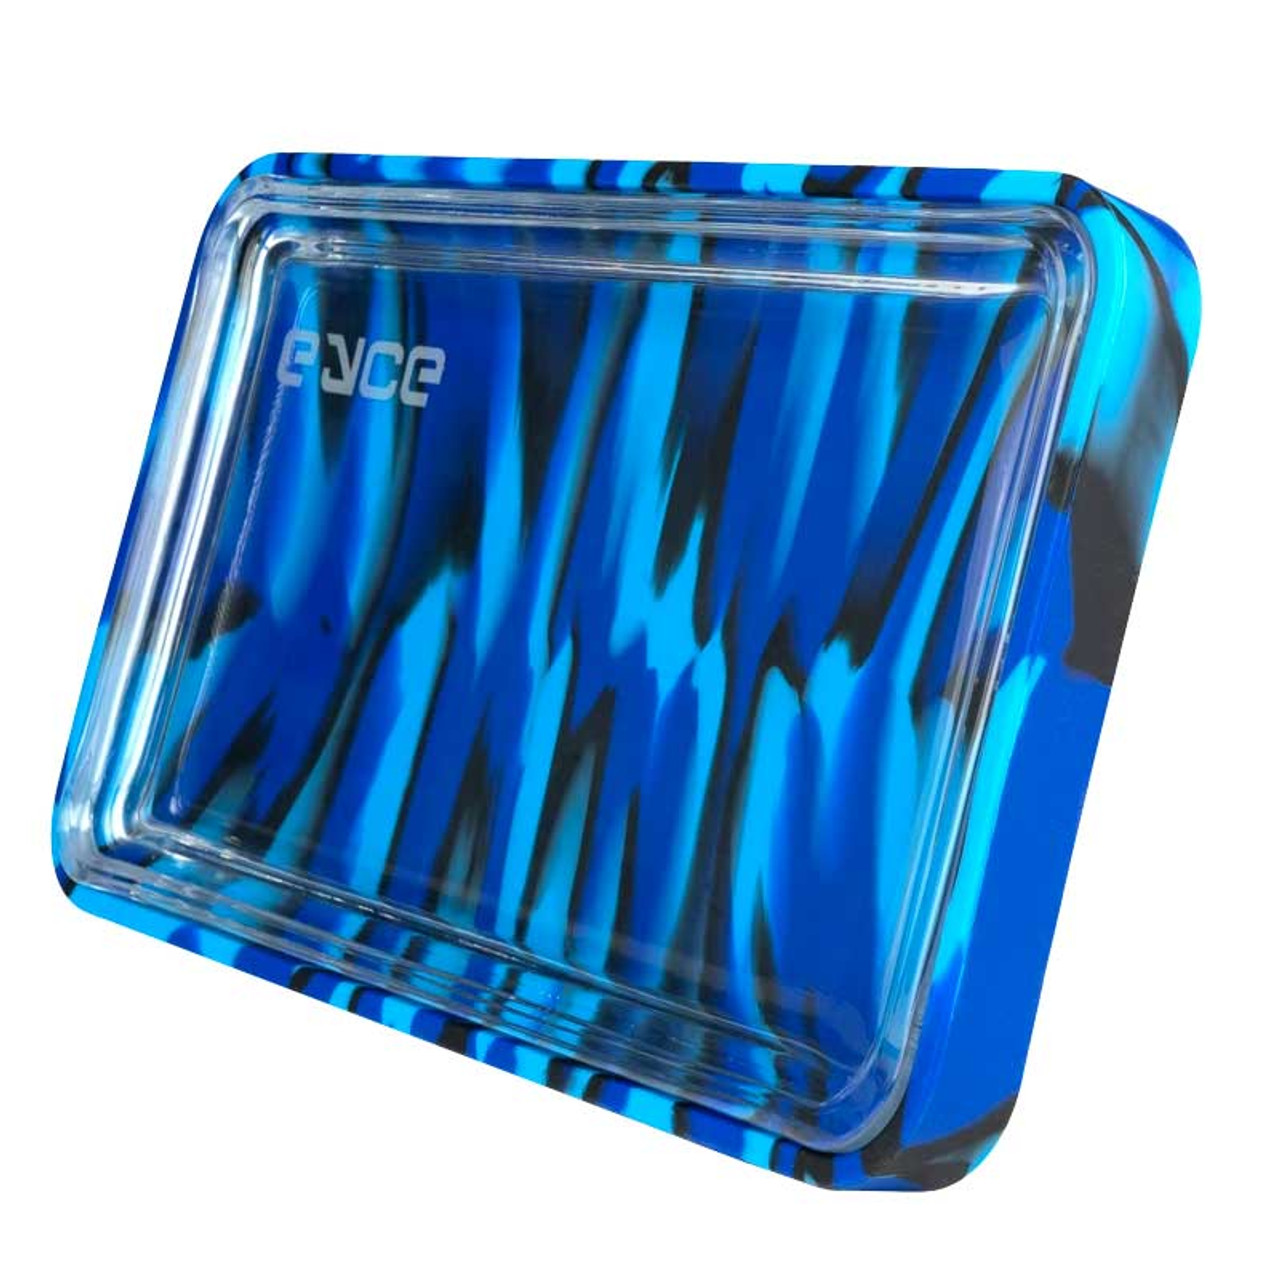 Eyce Rolling Tray - Midnight Blue 2